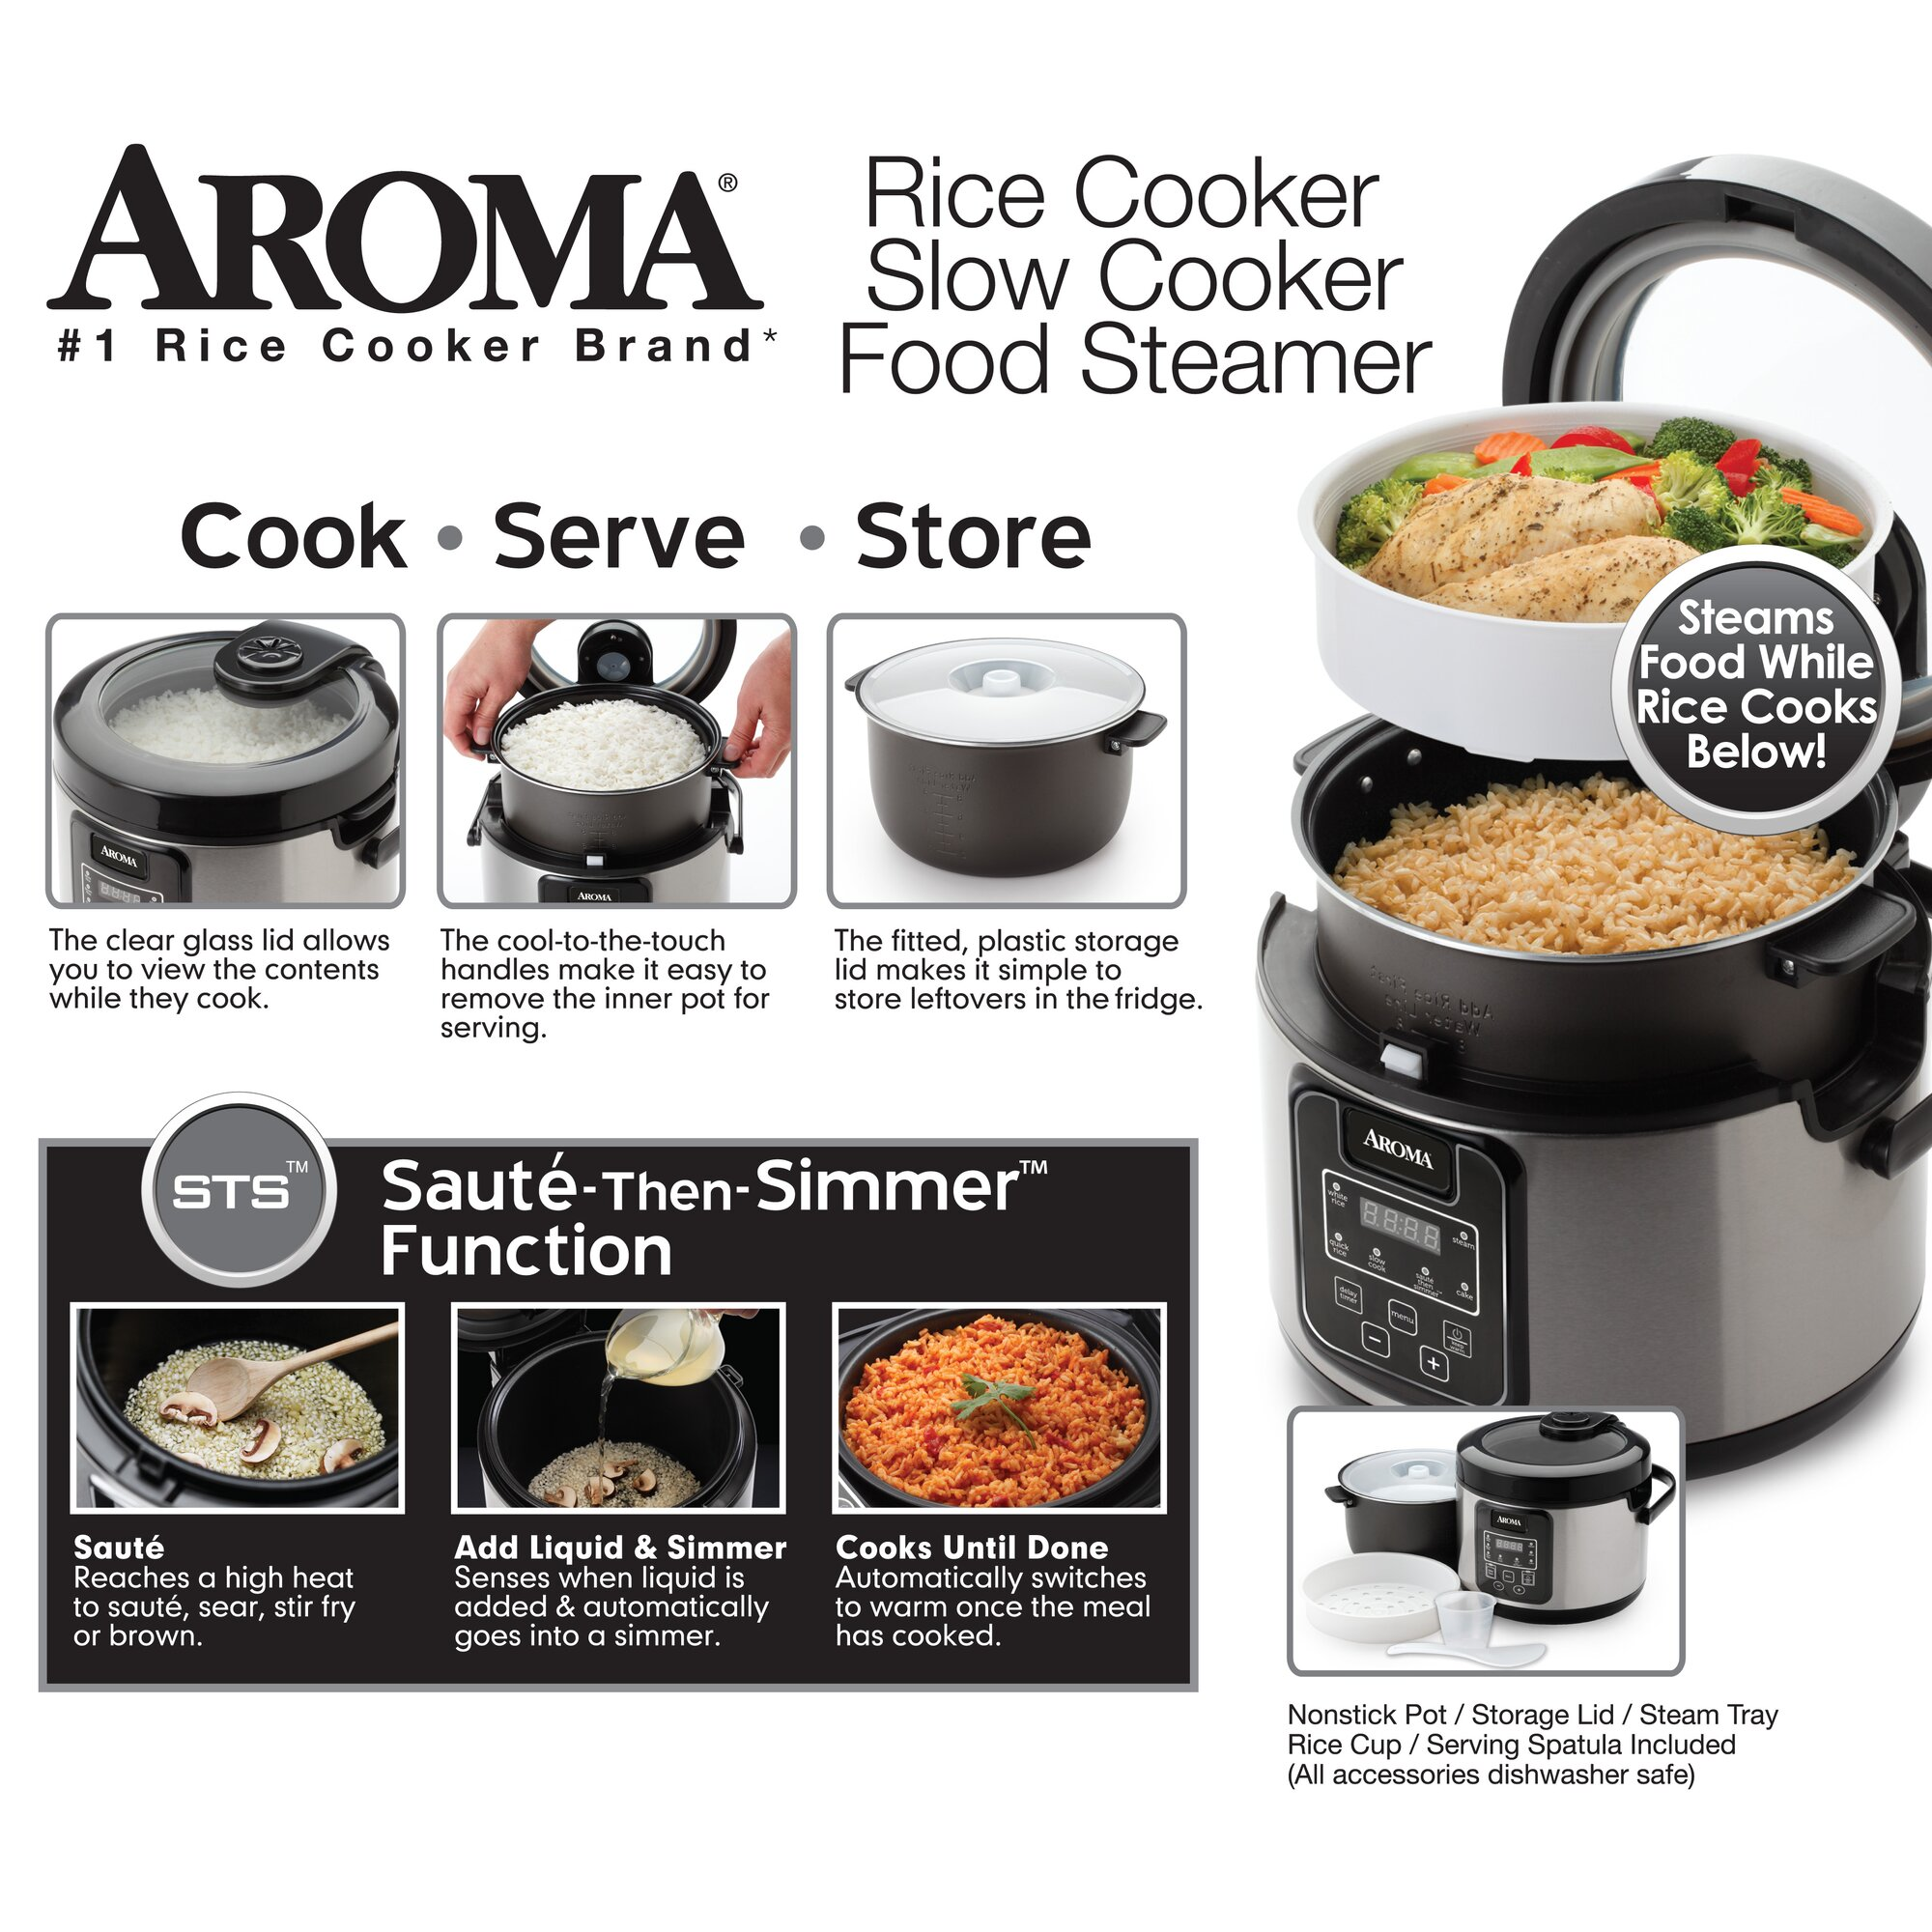 16cup Slow Cooker, Food Steamer And Rice Cooker